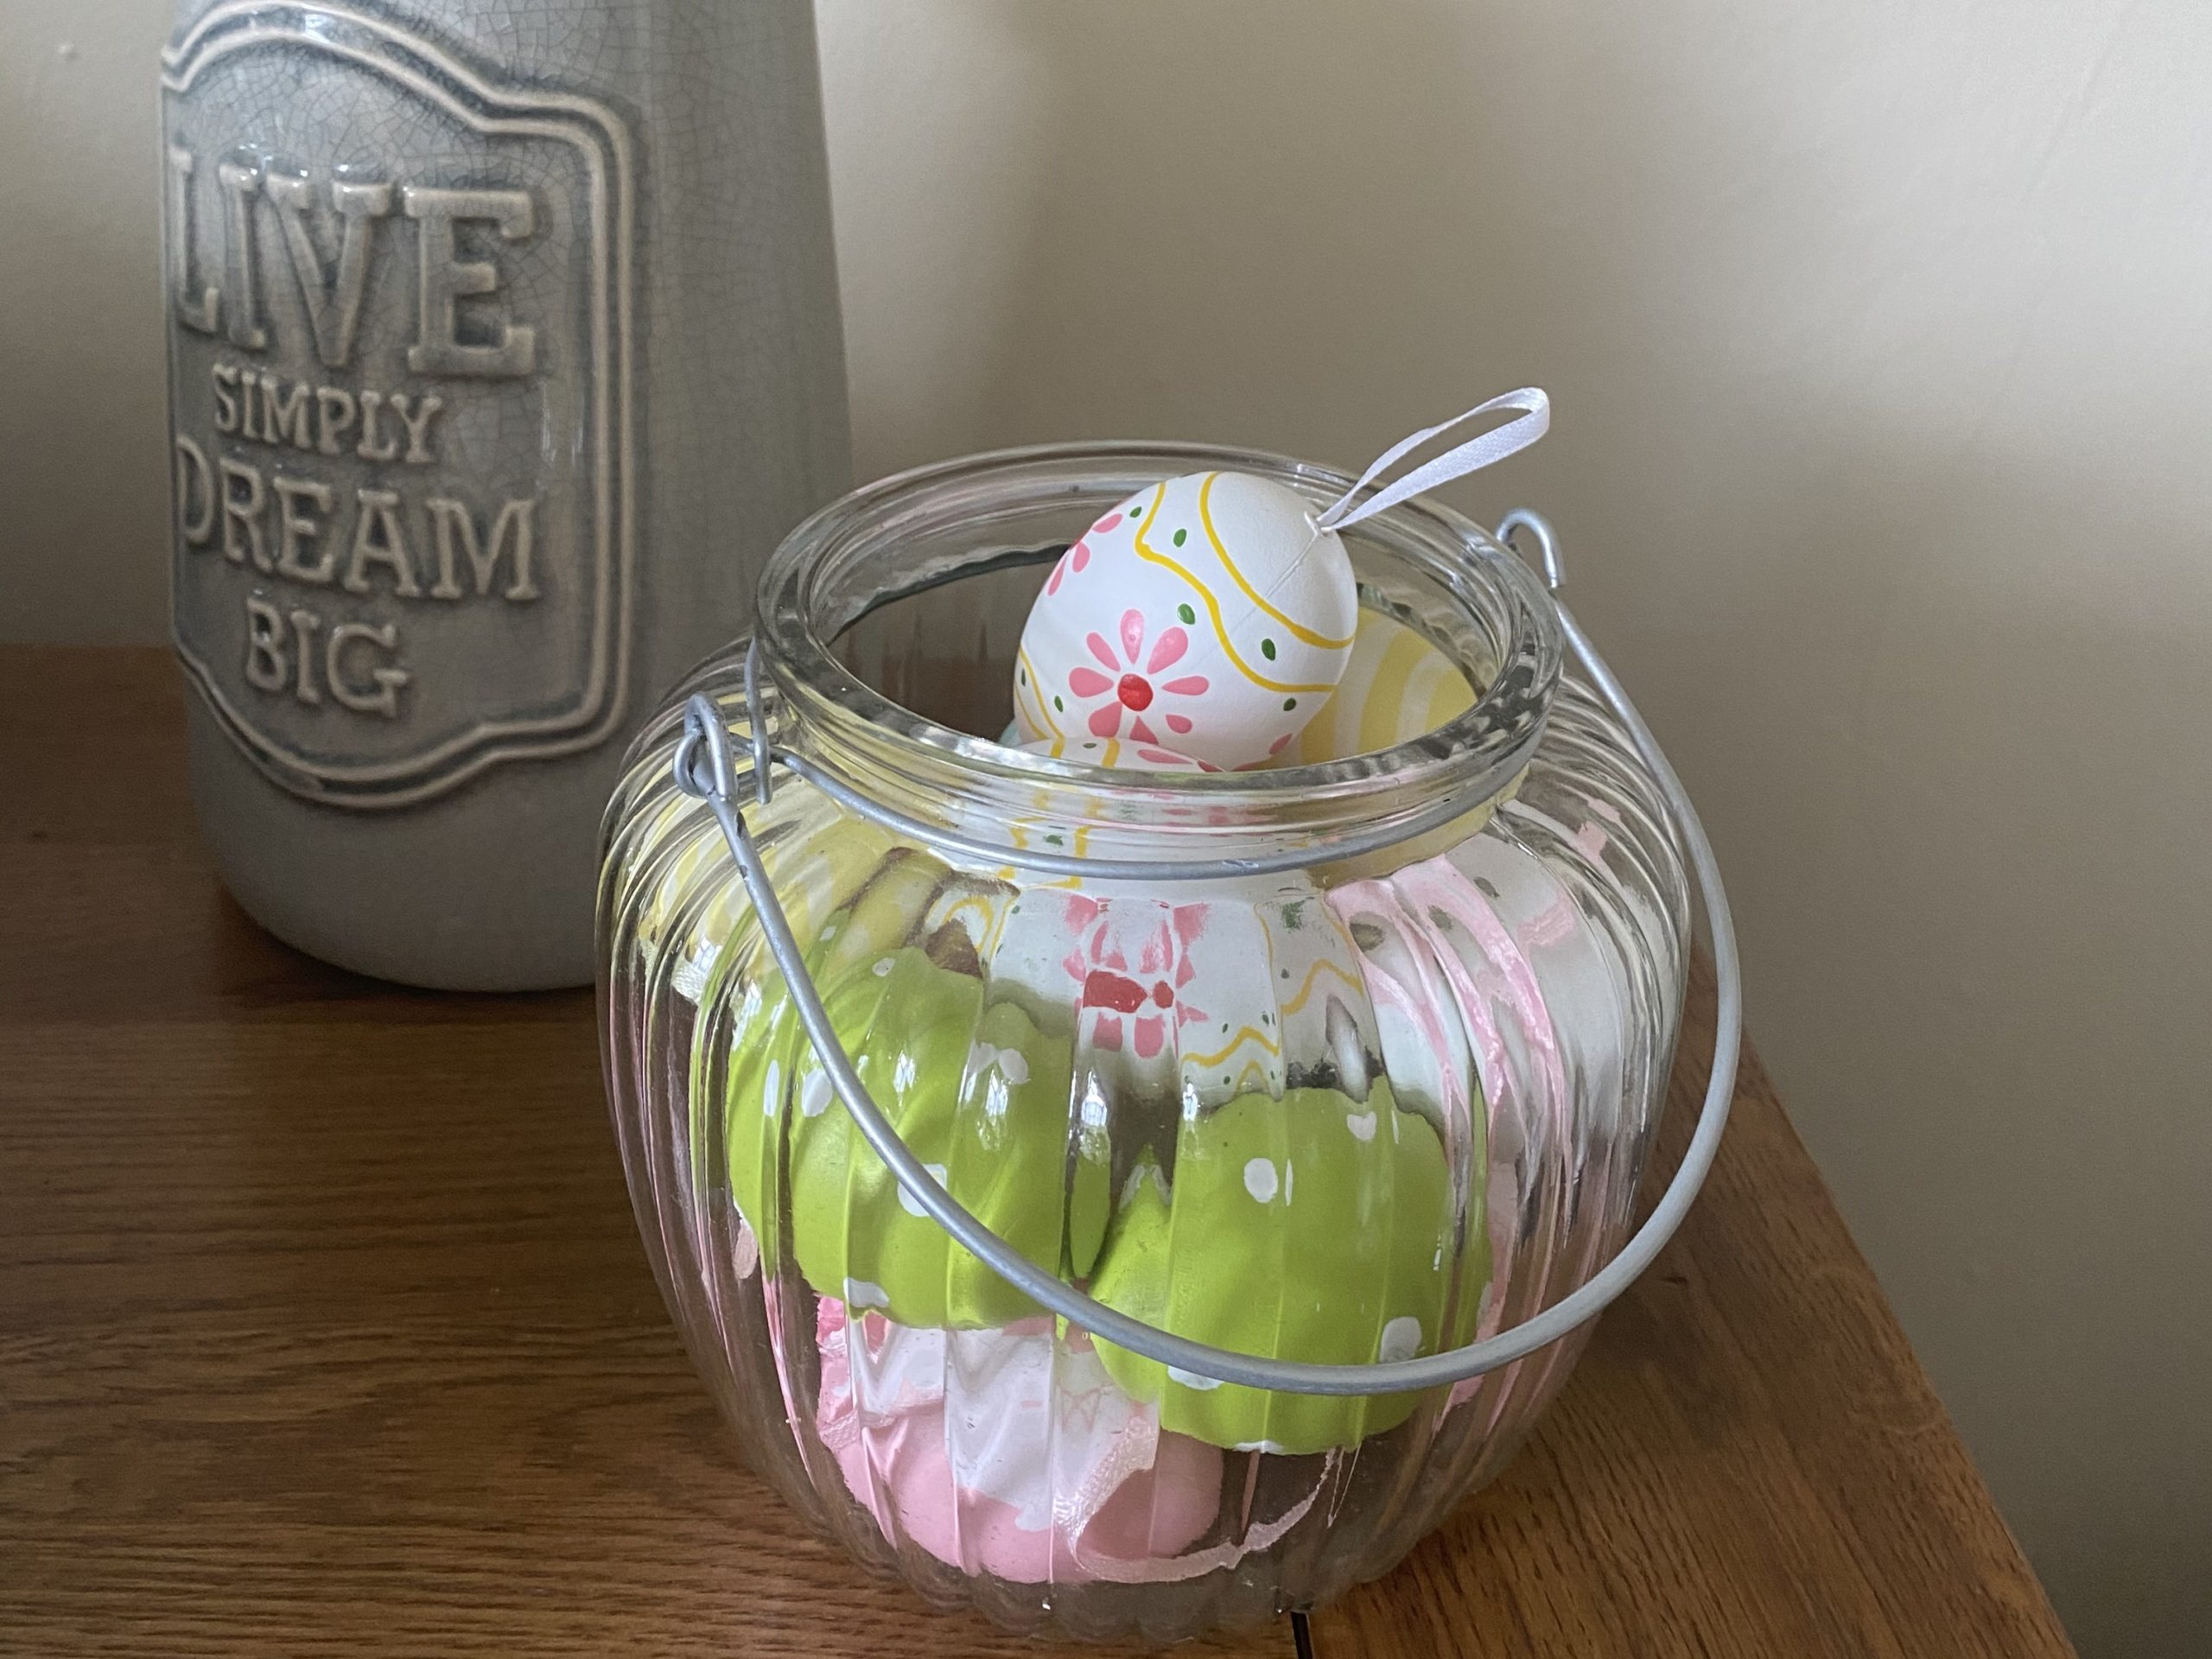 Easter Home decor - a glass bowl filled with eggs